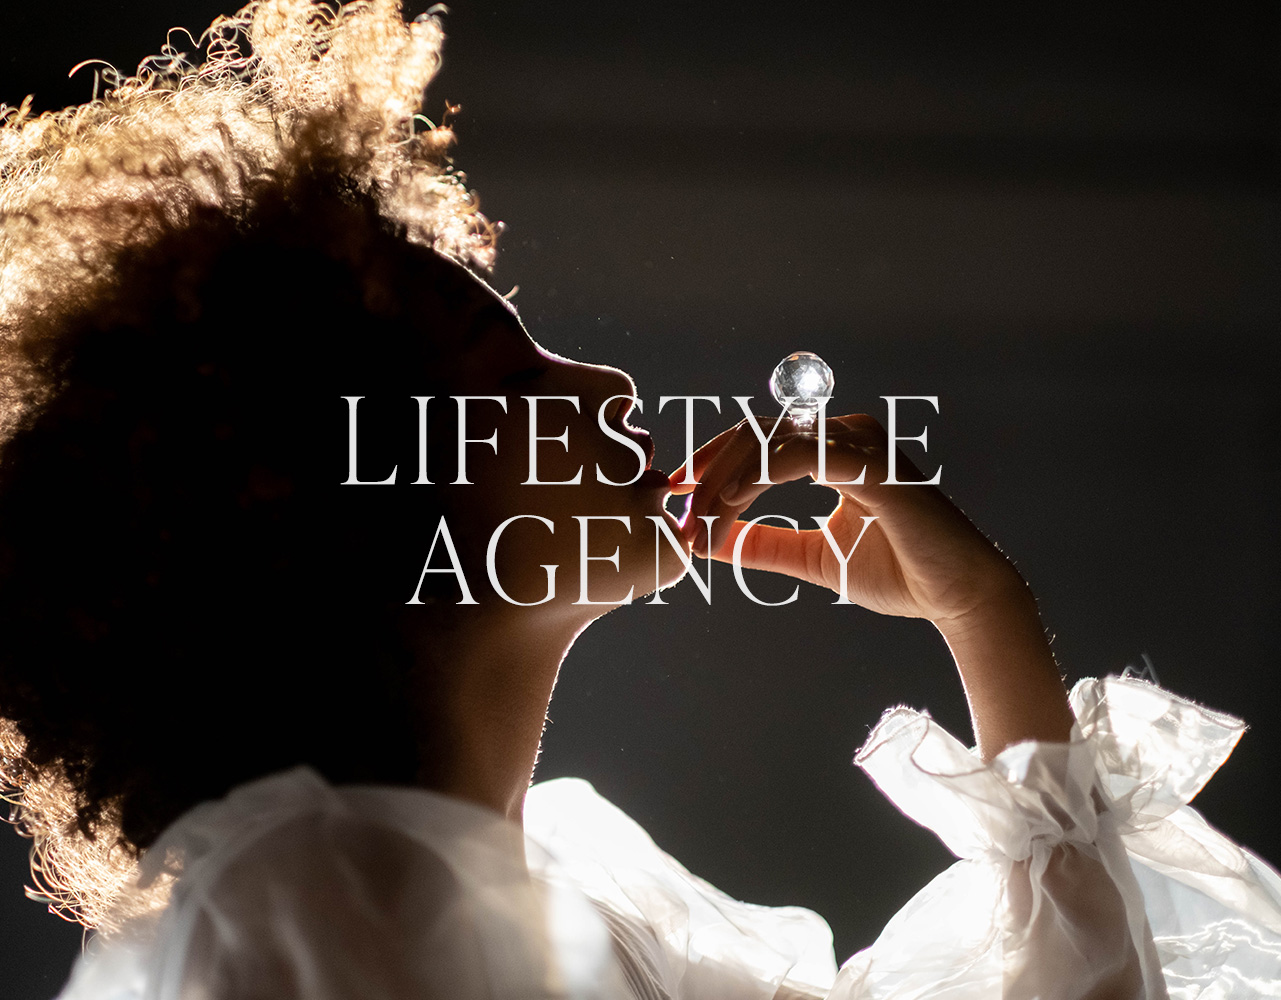 Press & PR Consultant Lifestyle Agency image